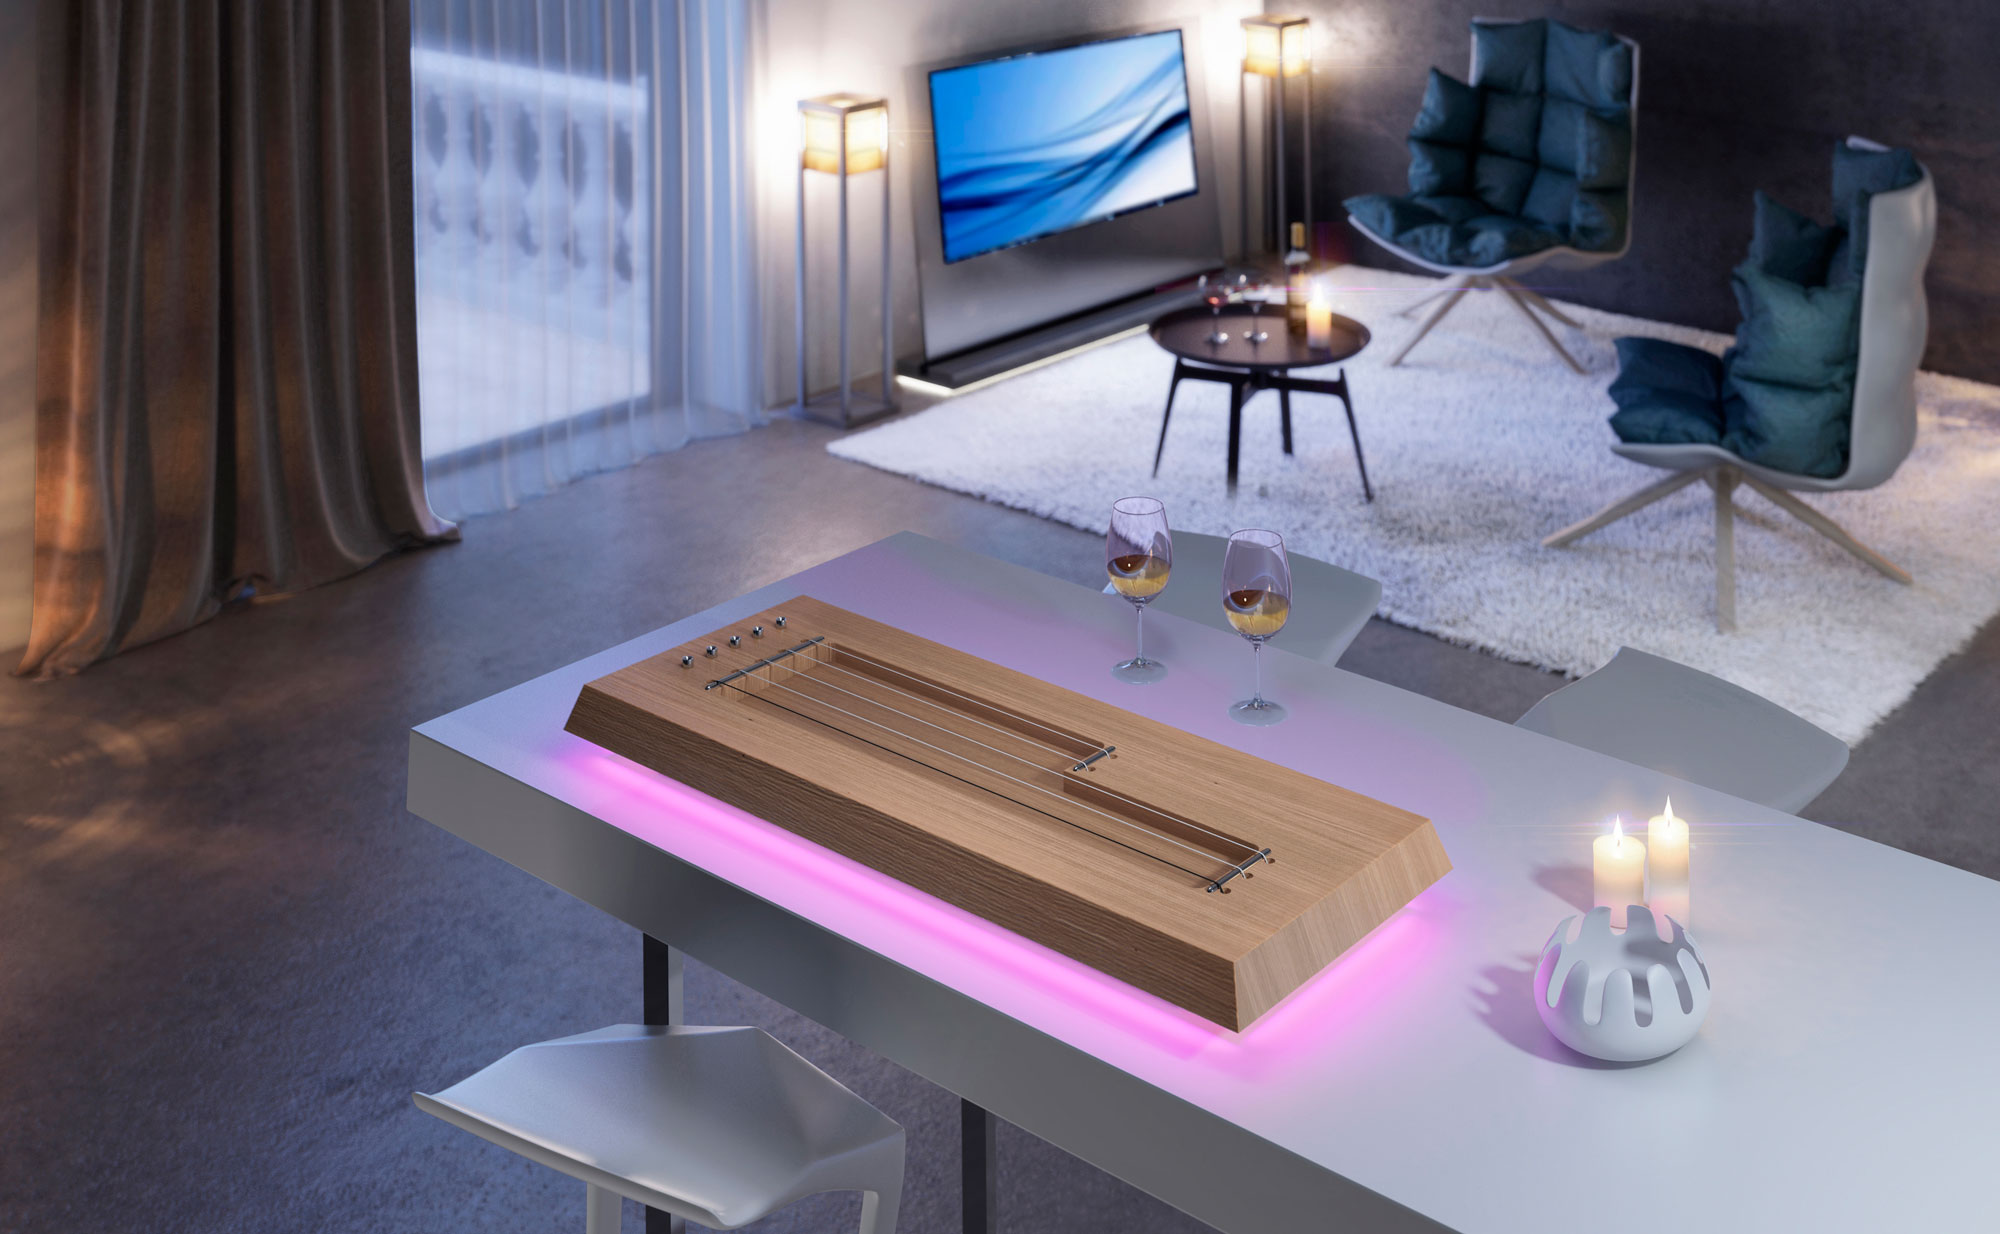 Croma Lamp maple edition ambiental violet version